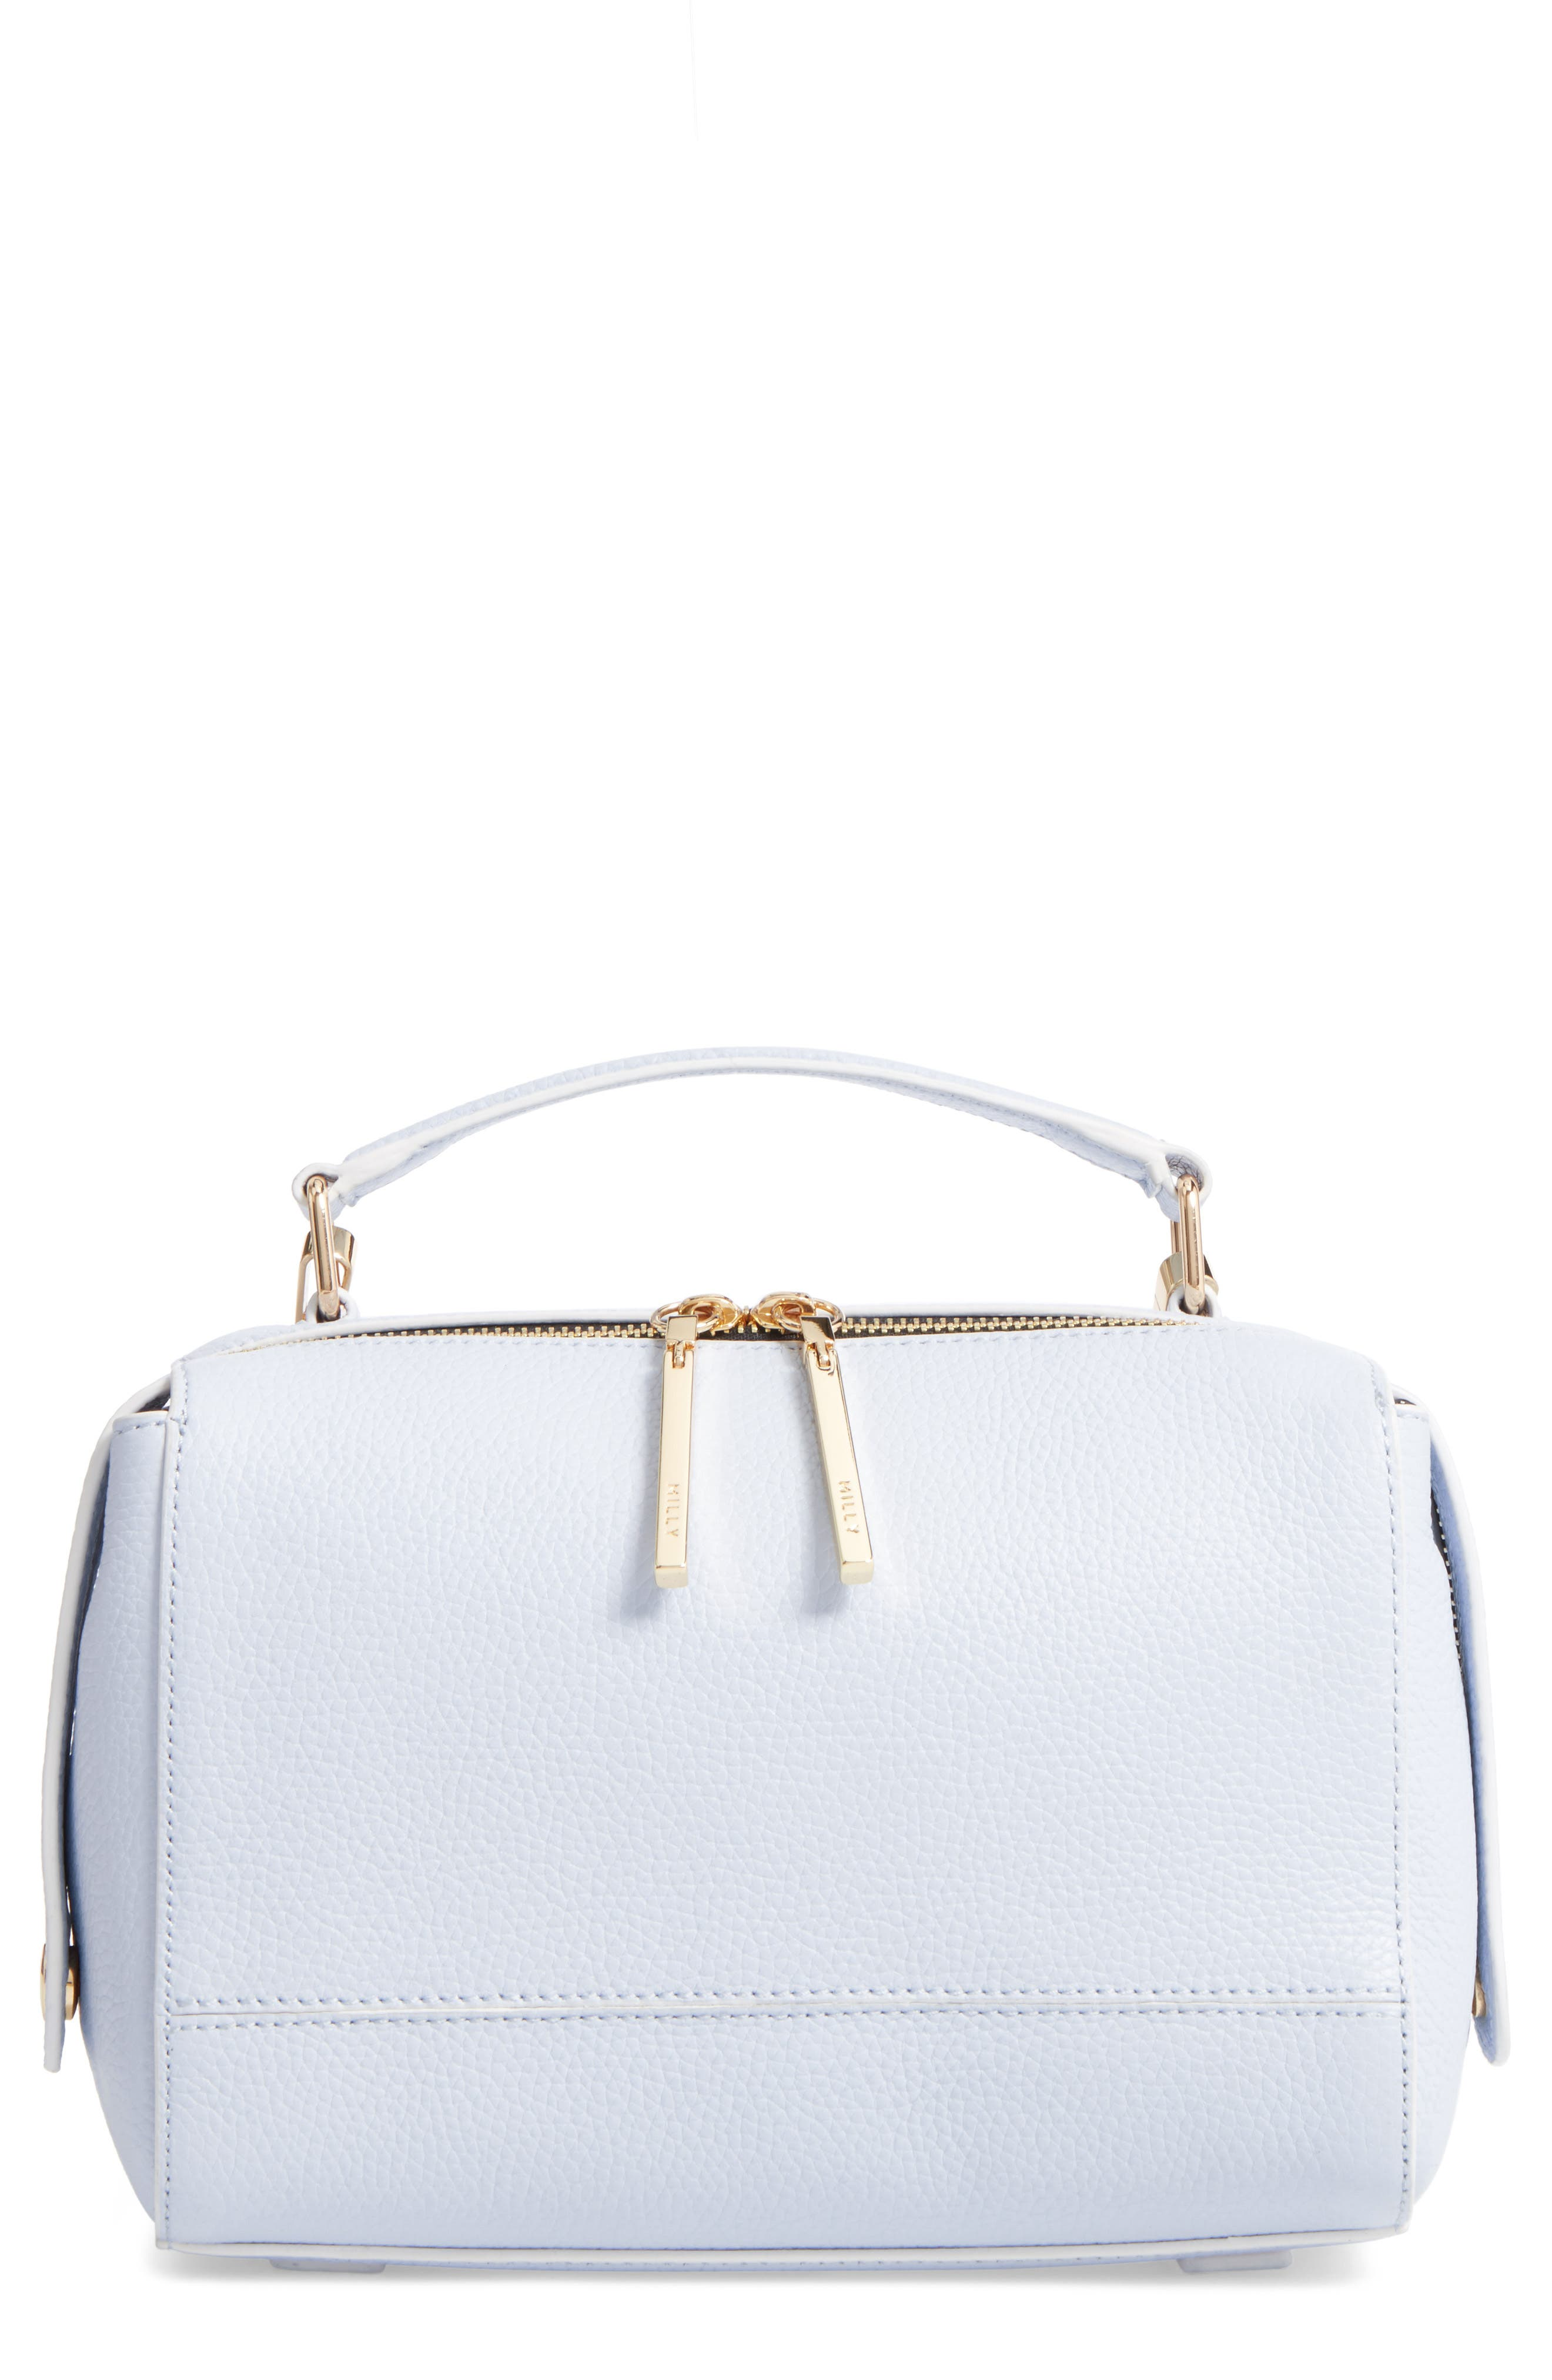 Milly Astor Leather Top Handle Satchel